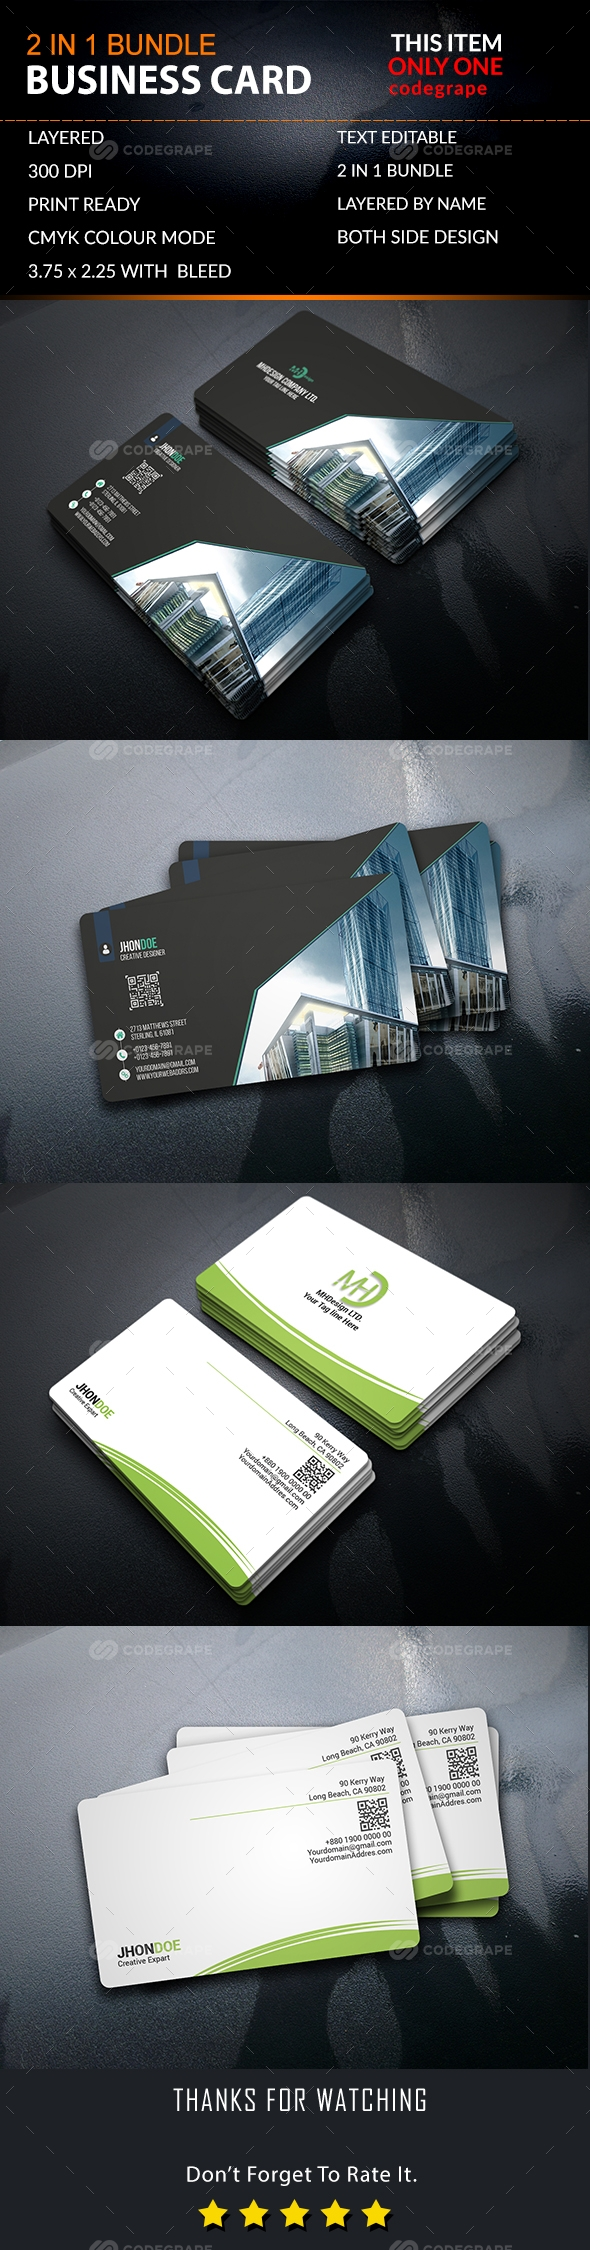 2 IN 1 Bundle Business Card